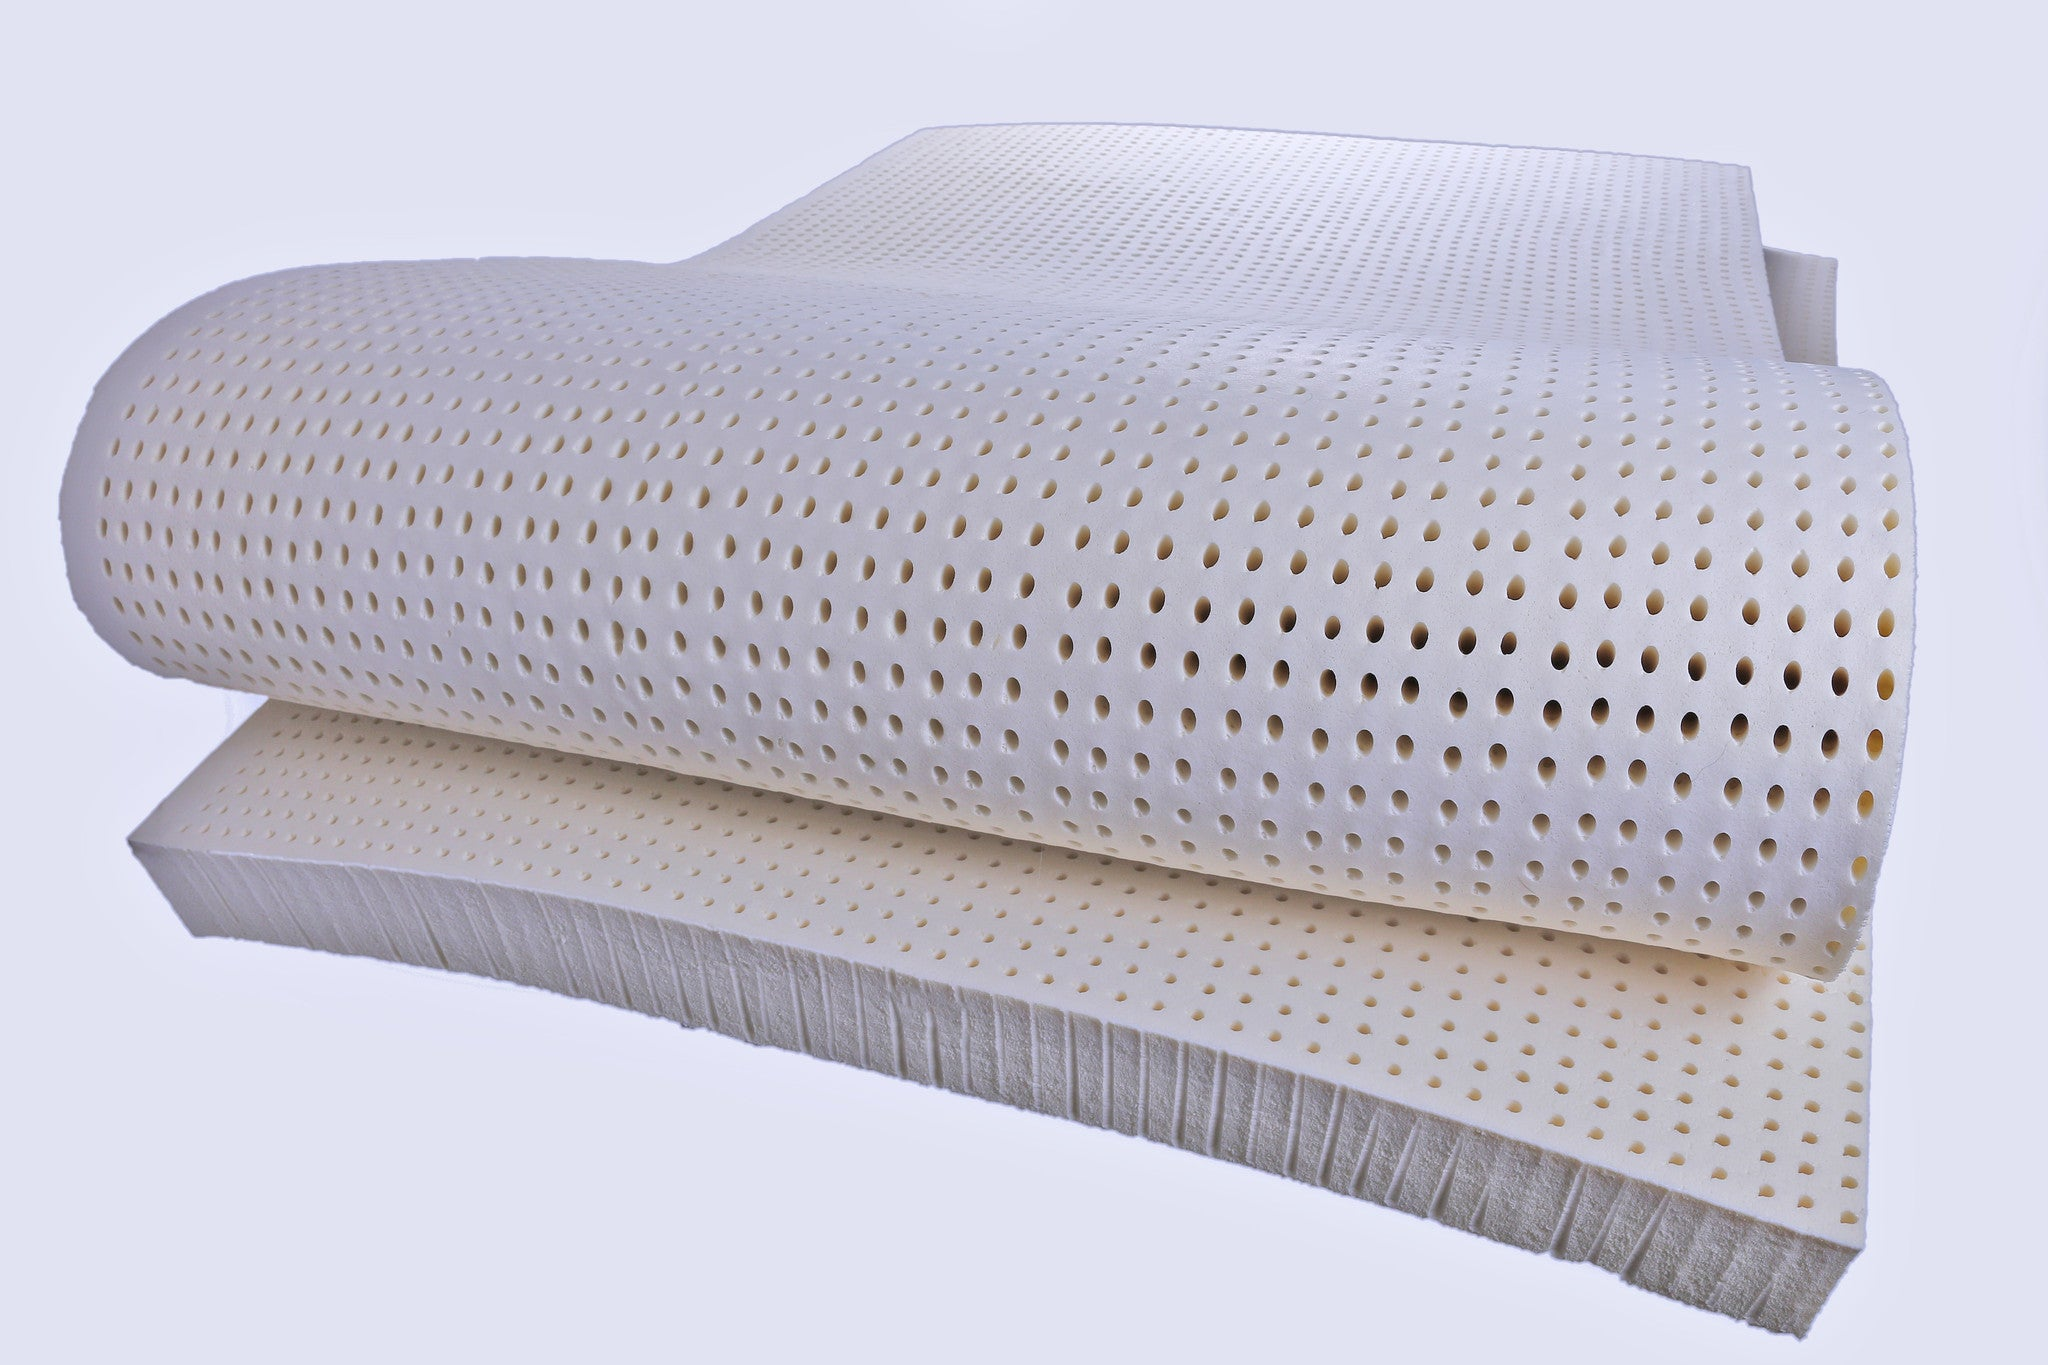 ipt innovations instant next main sleepinnovations fiber topper memory pillow sleep product foam top and mattress